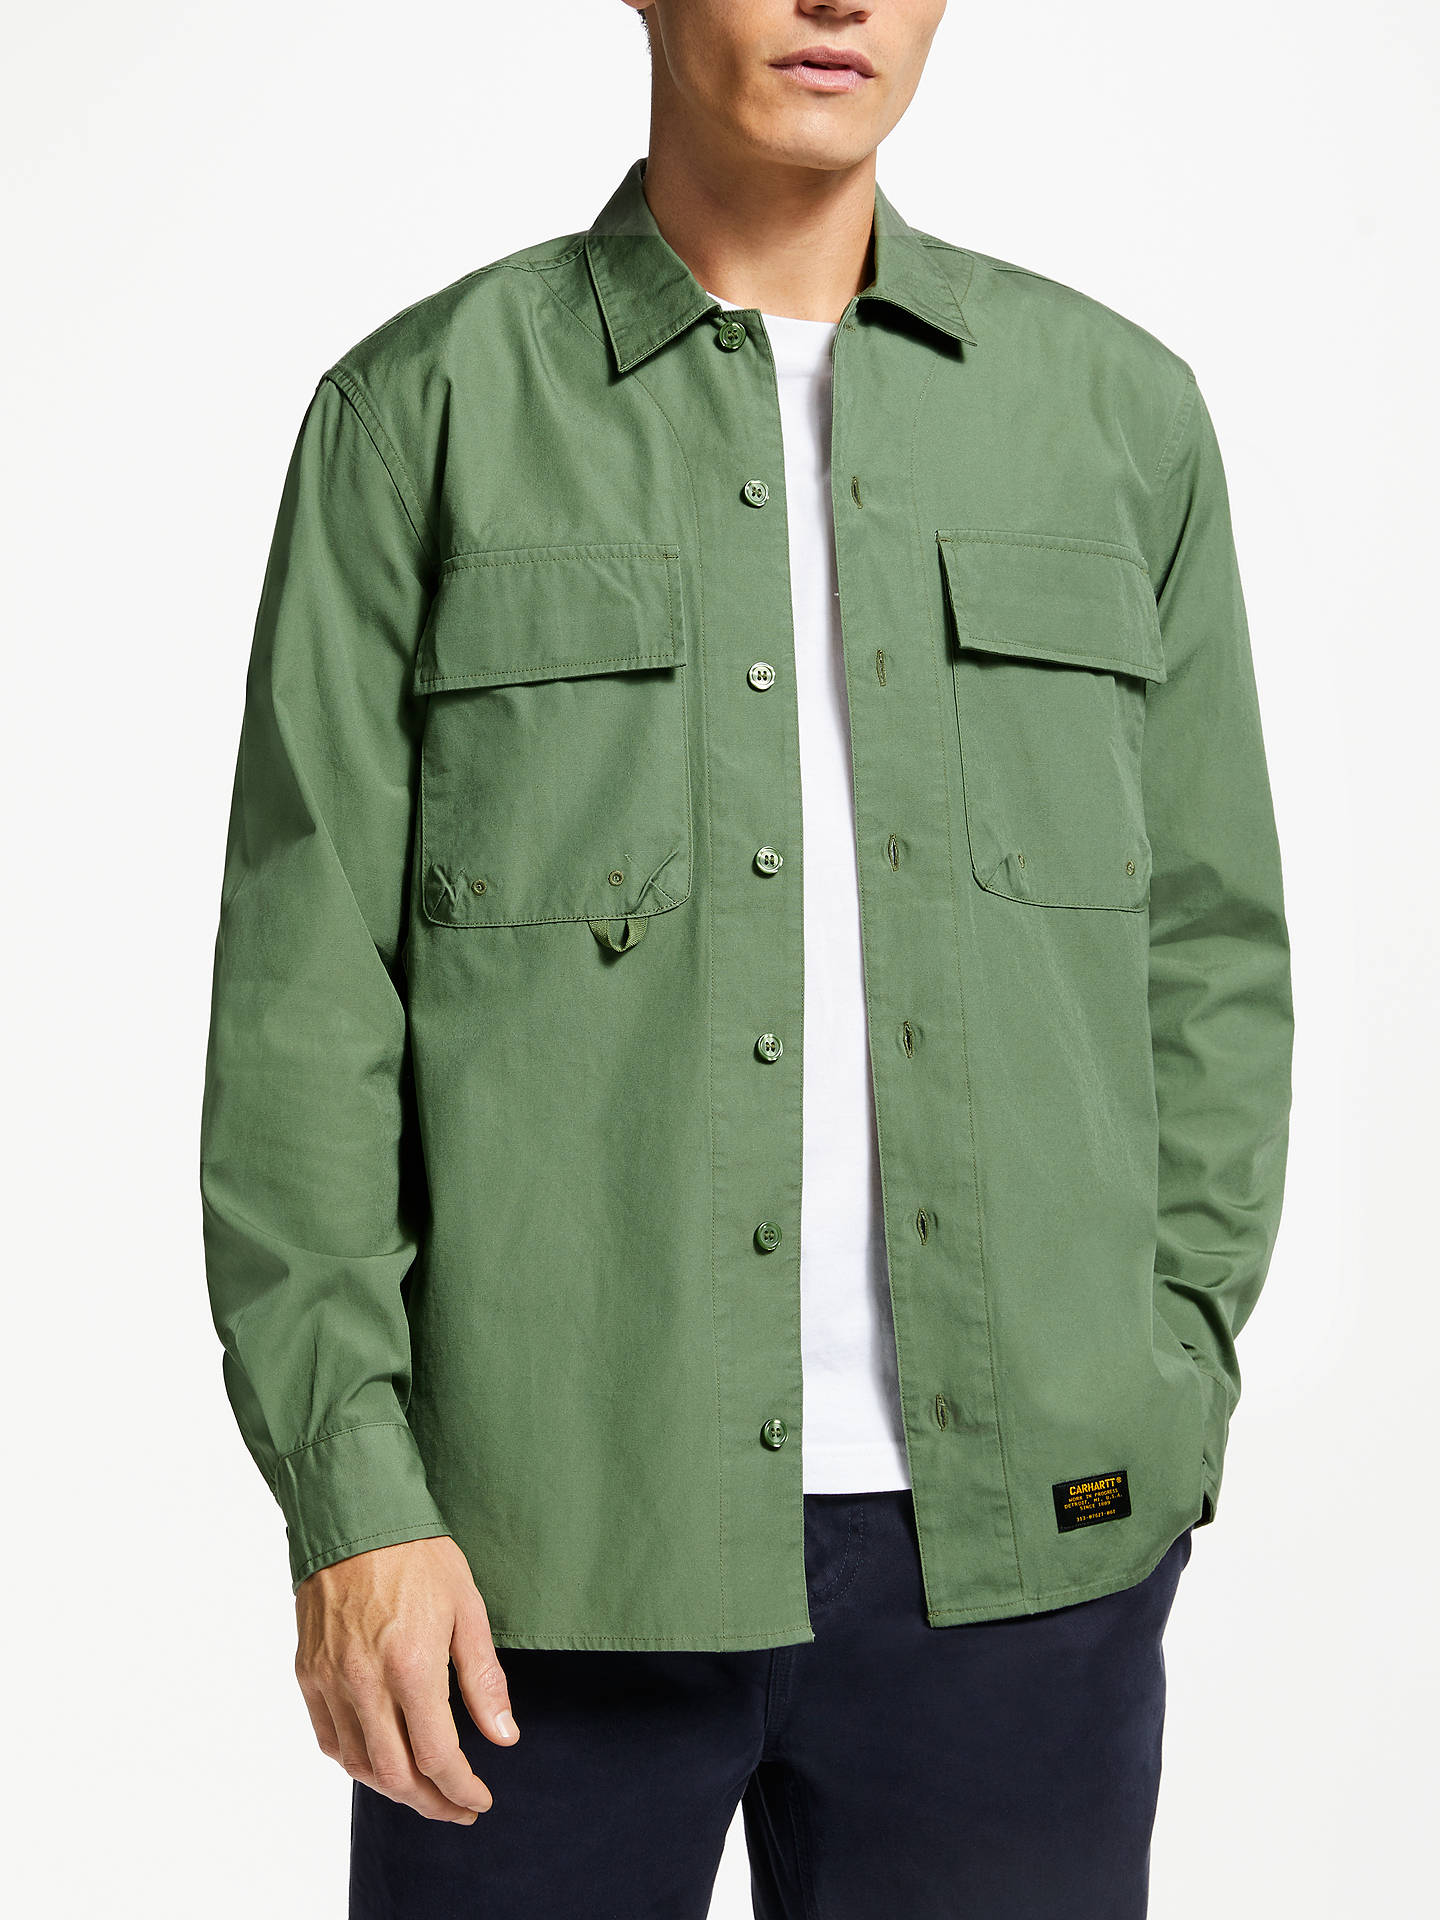 4e672f61f4fb3b Carhartt WIP Laxford Long Sleeve Shirt at John Lewis   Partners